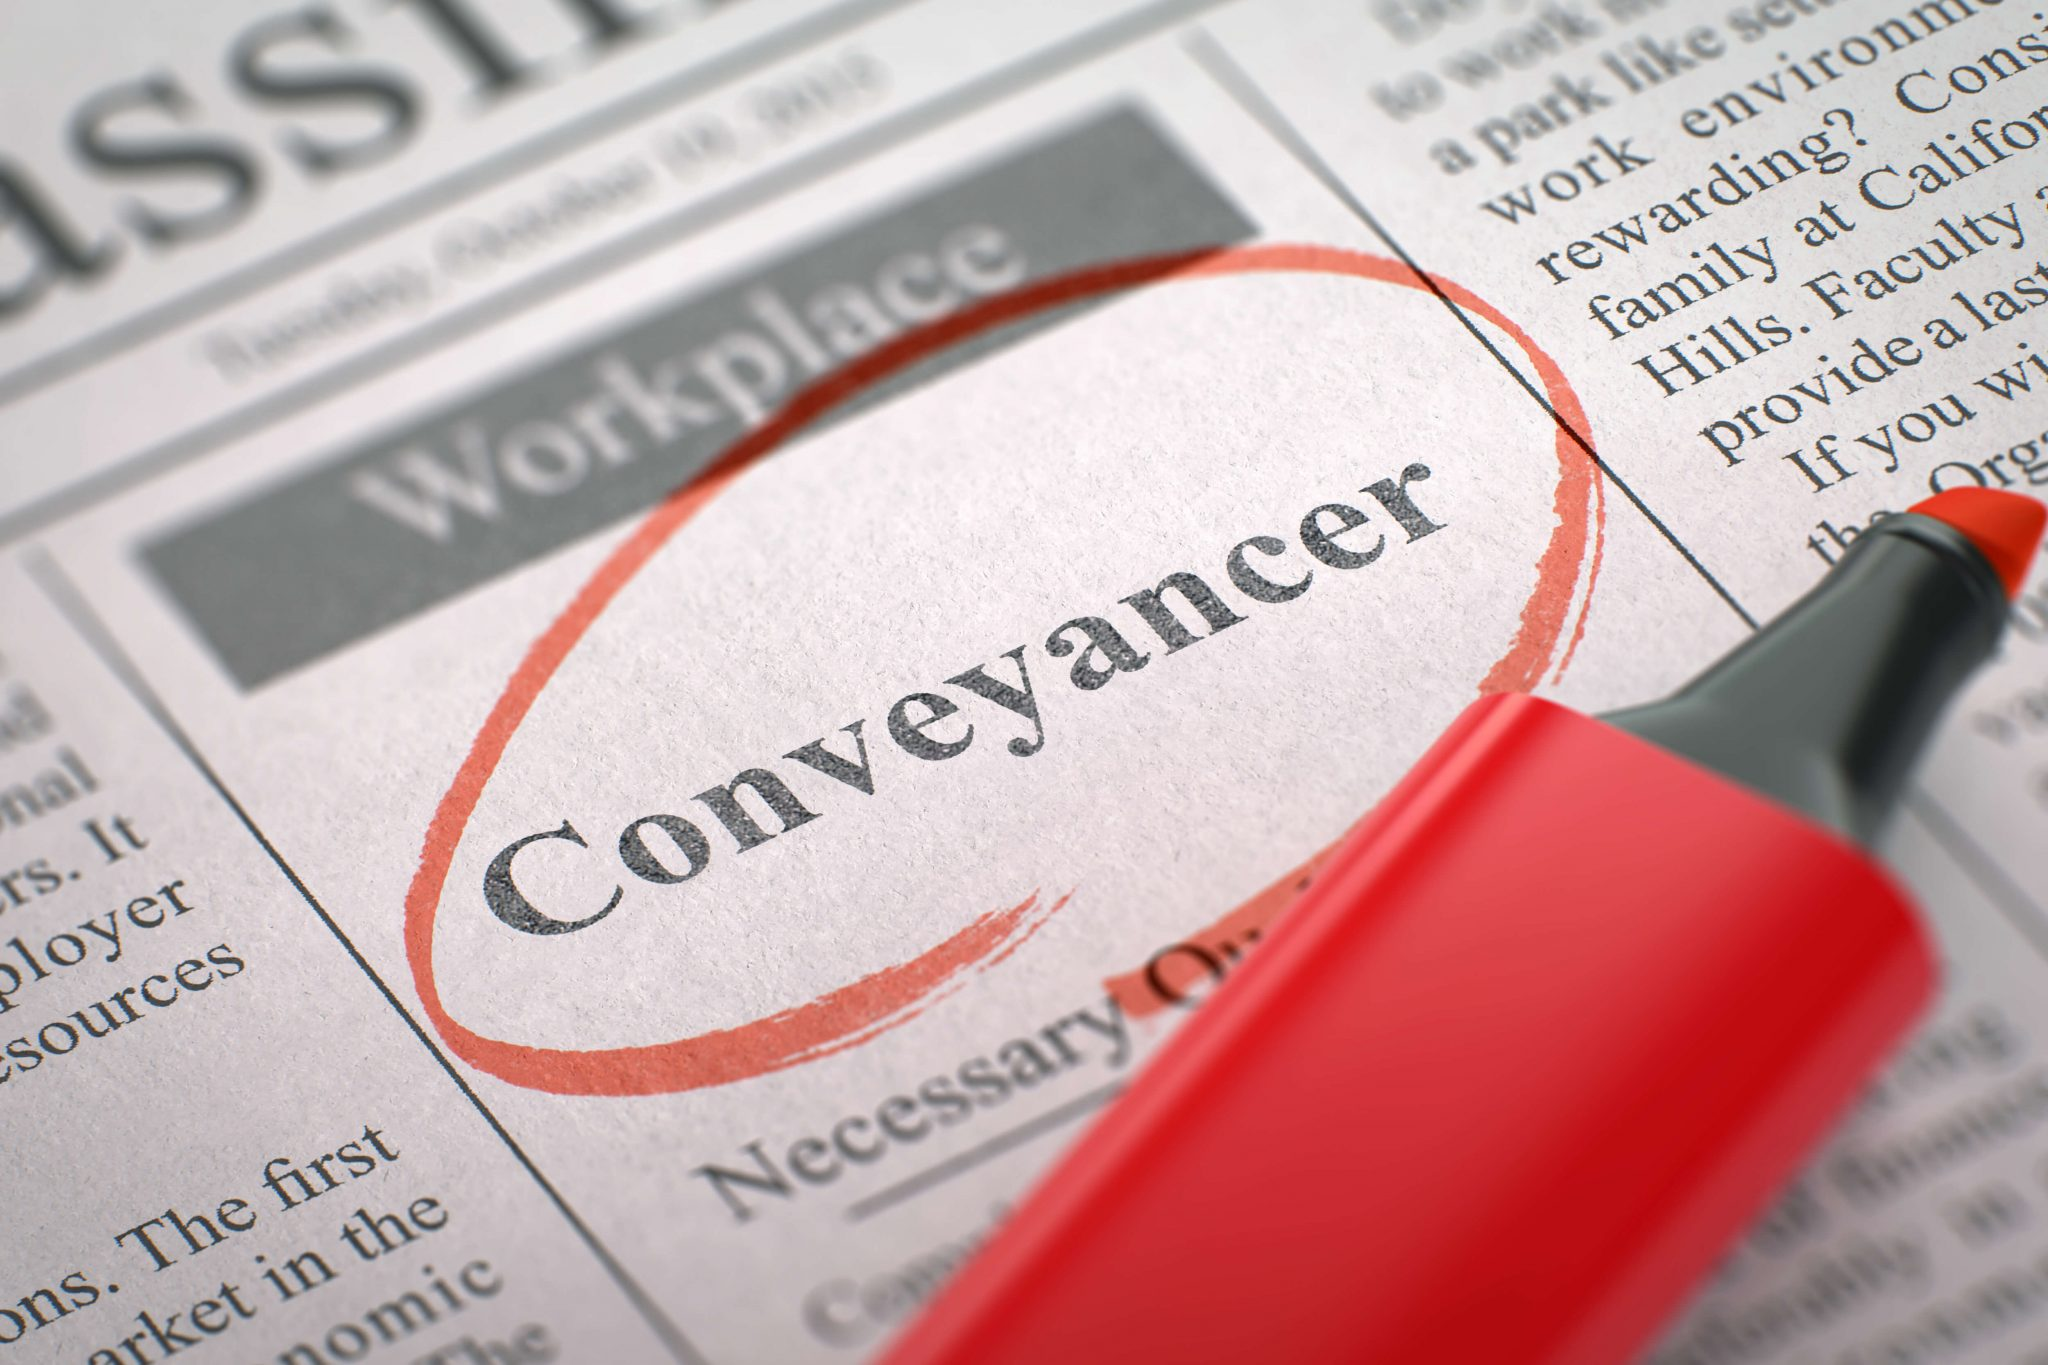 residential conveyancer image